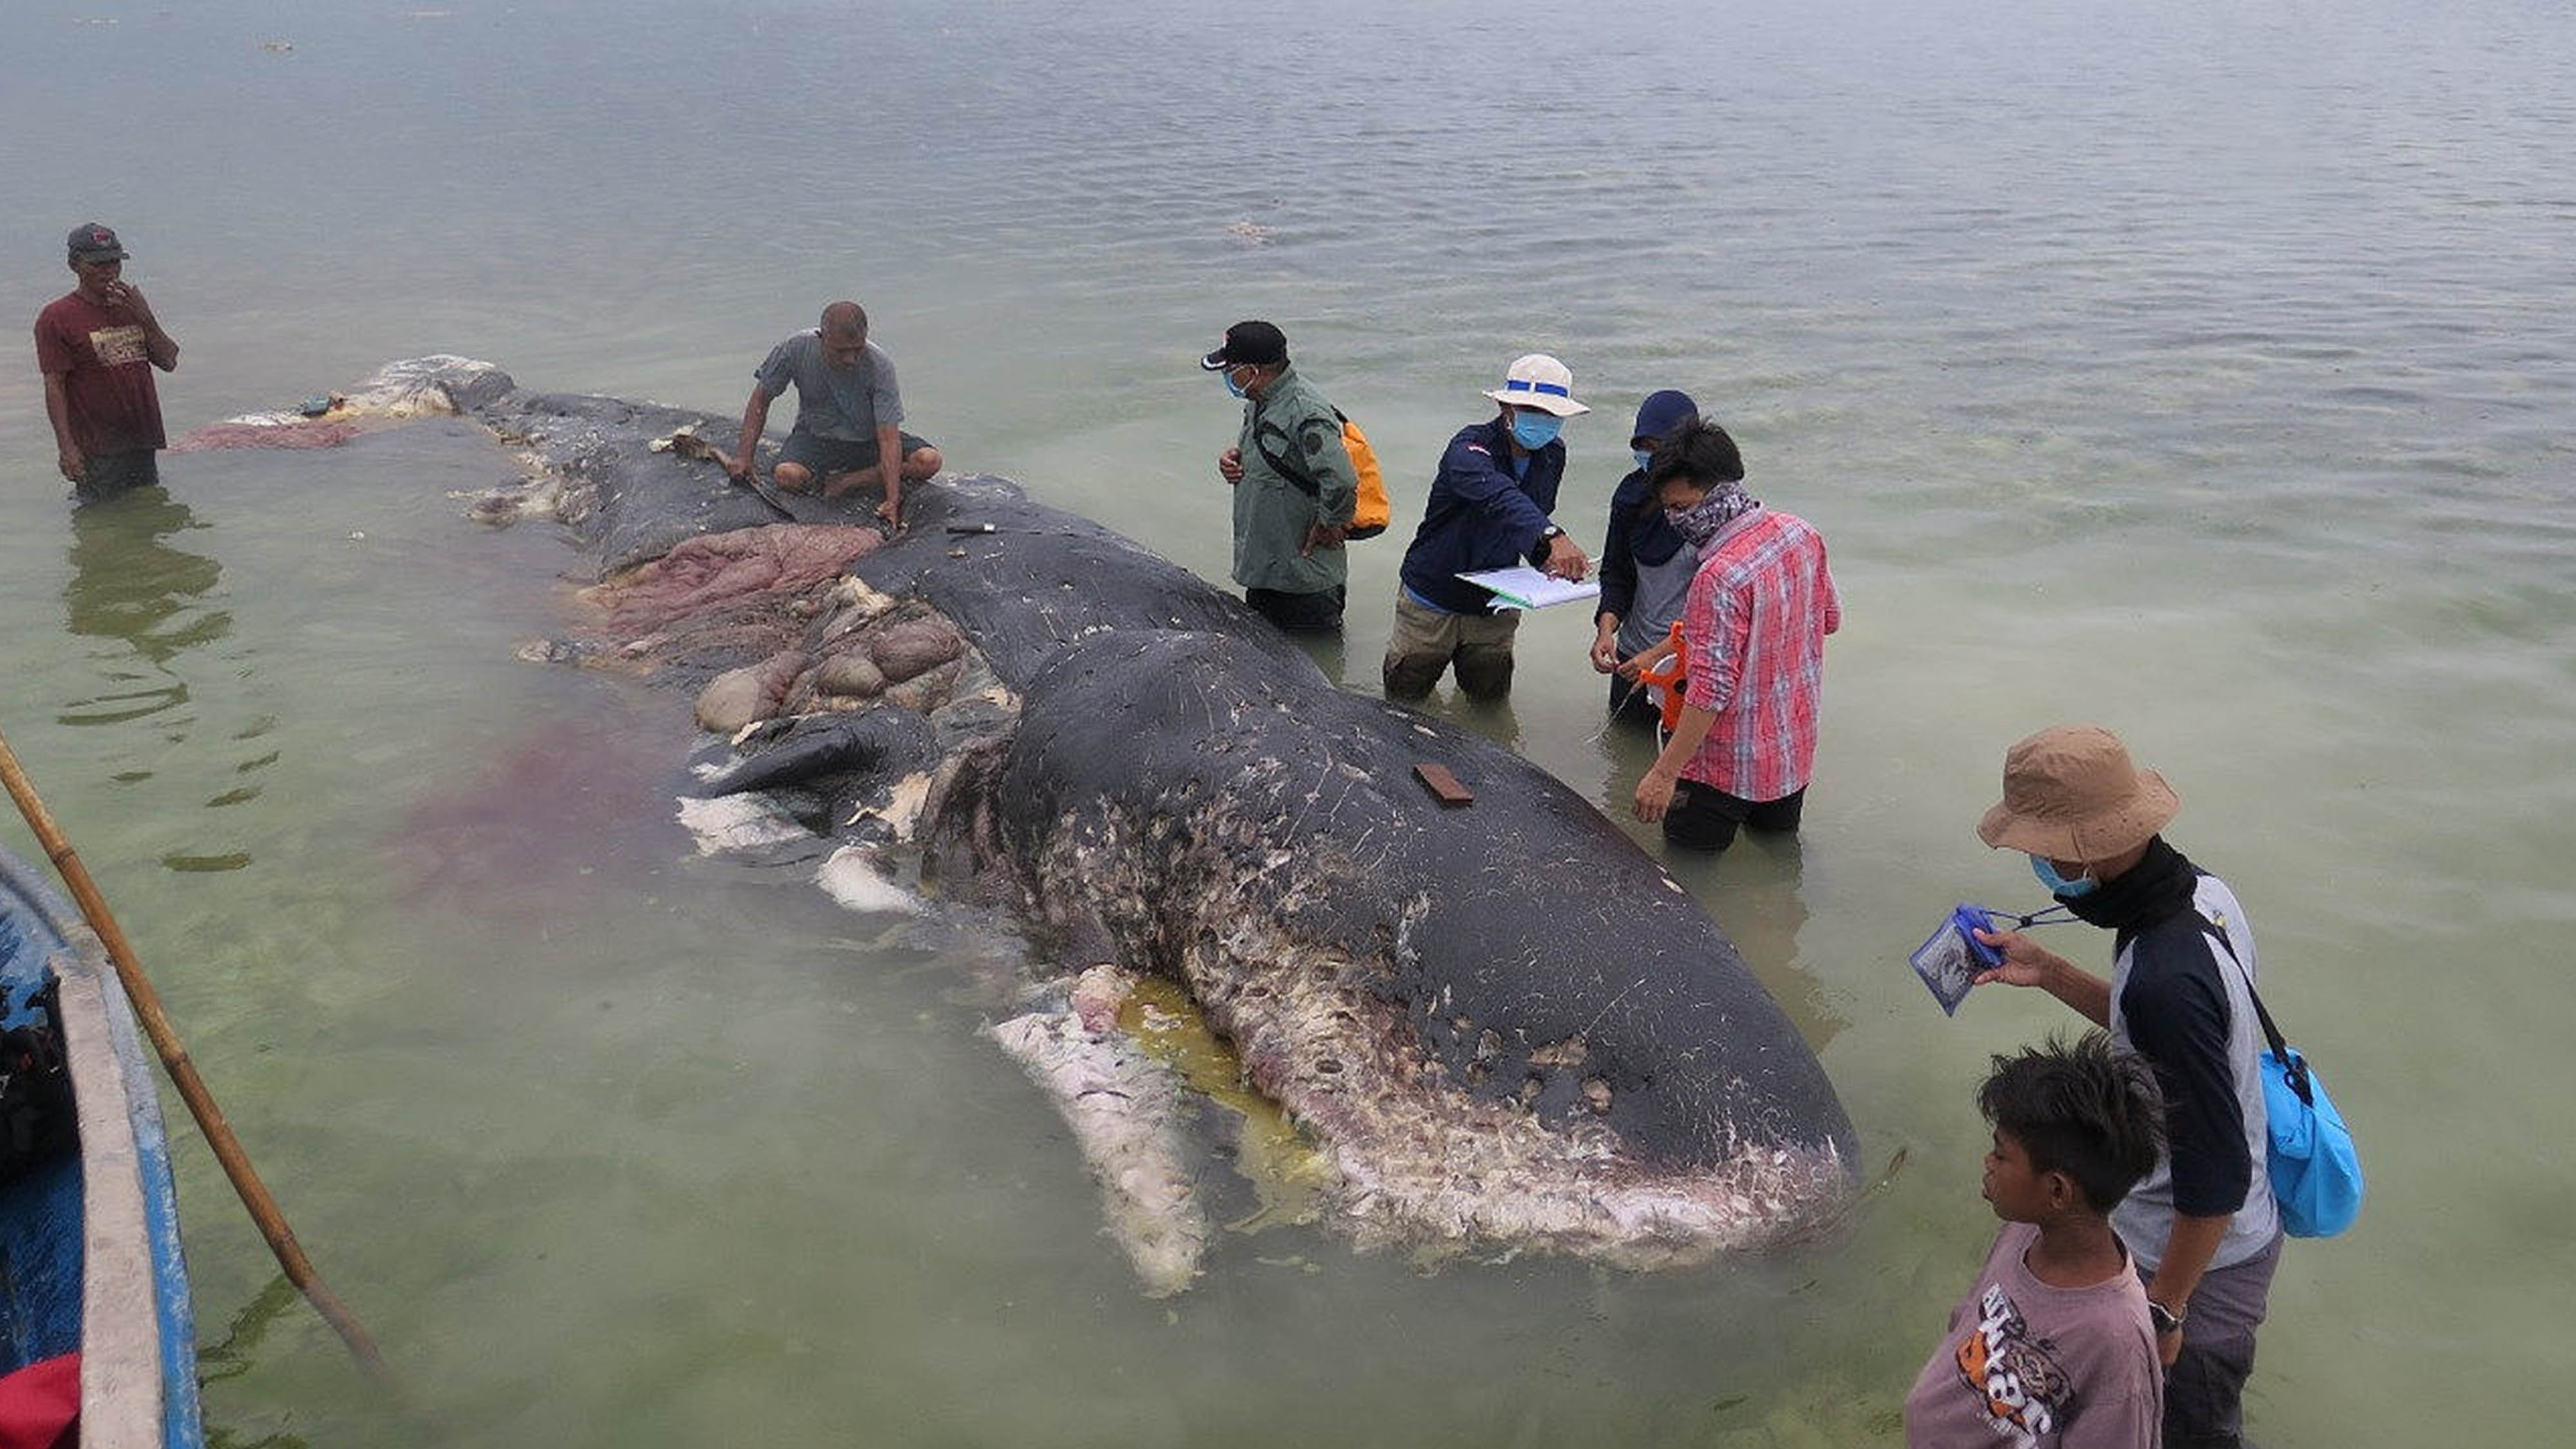 Whale dies after being stranded in central Indonesia